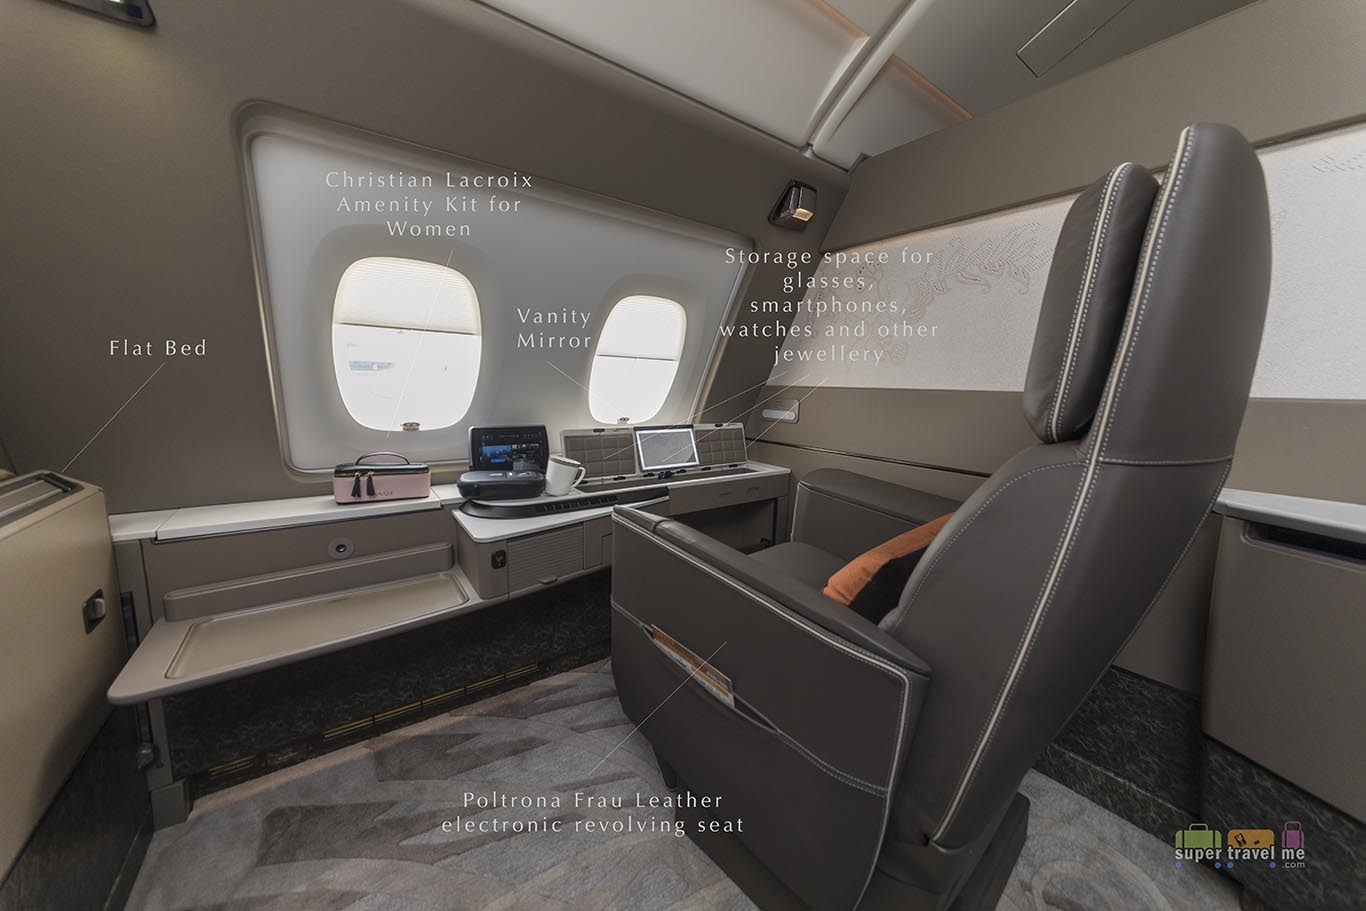 Singapore Airlines new Suites in the latest Airbus A380 aircraft 9V-SKU